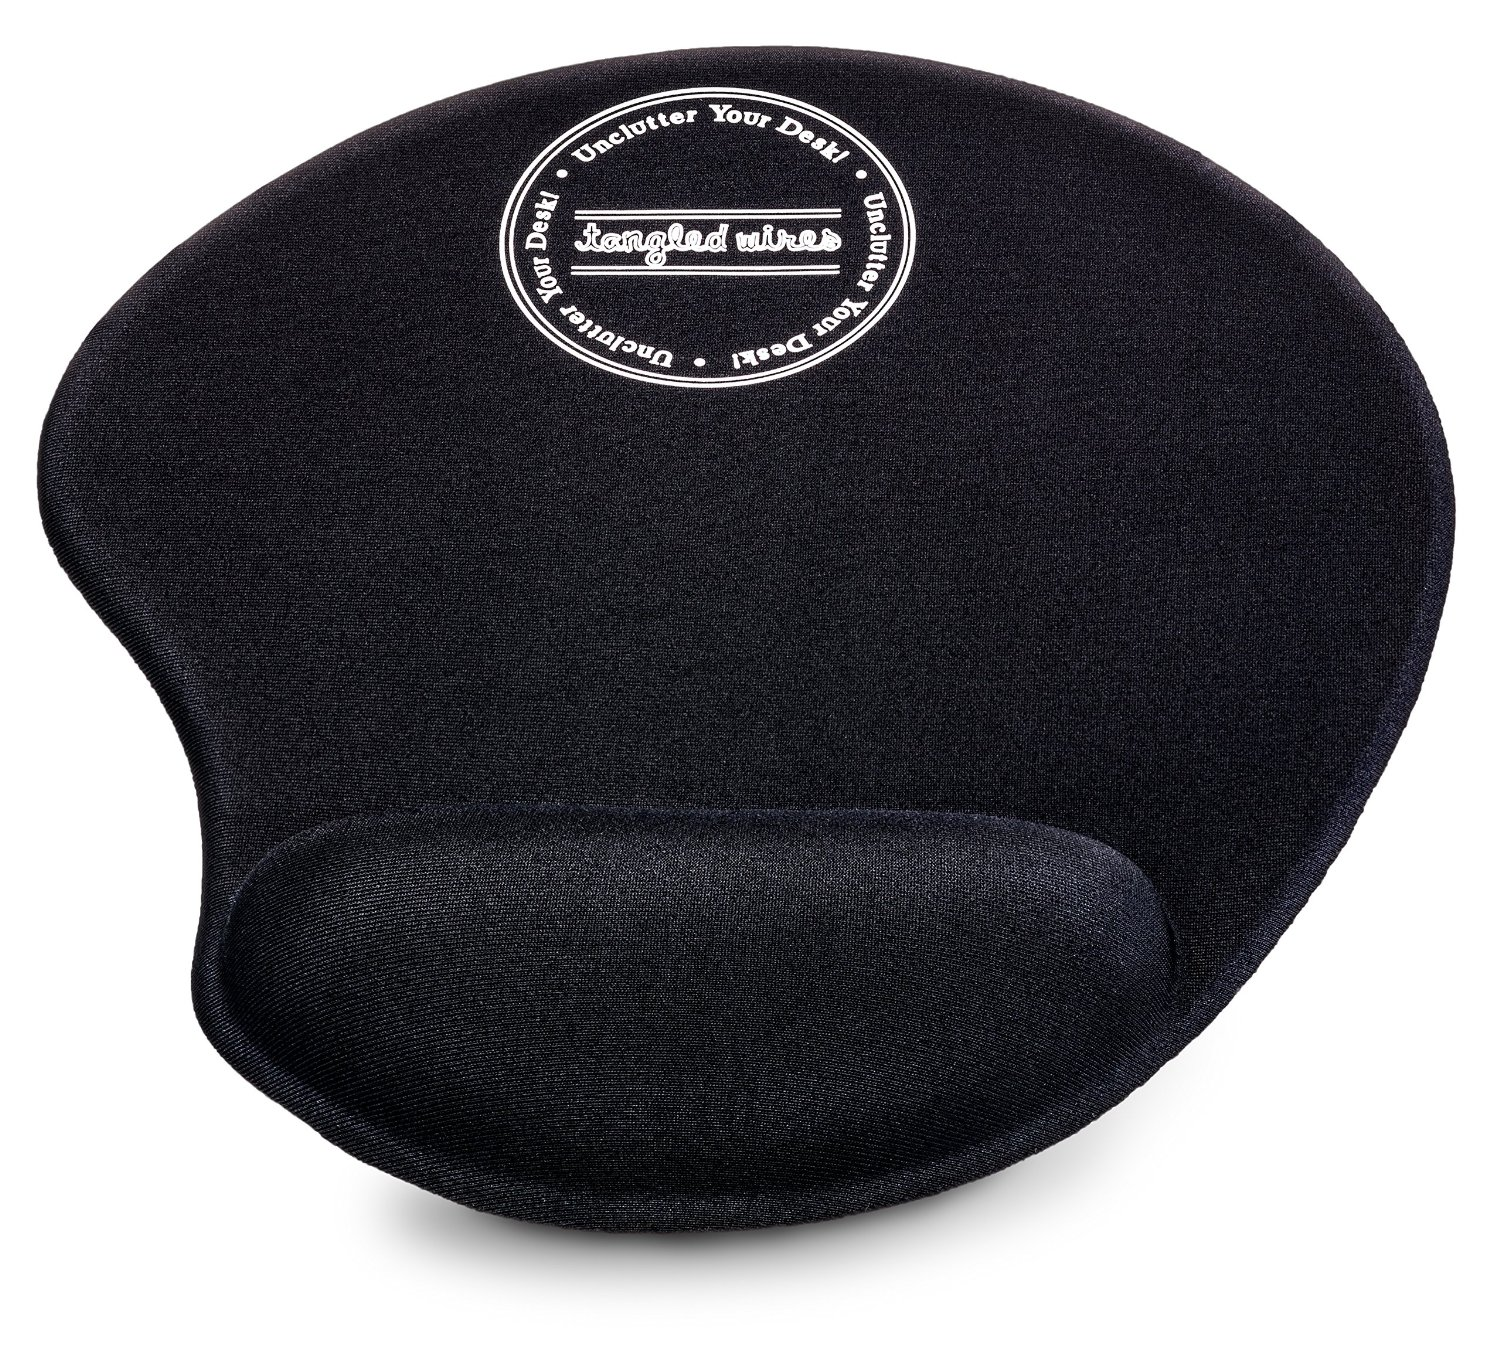 The Pad: Ergonomic Mousepad with Wrist Support - Protect Your Wrists and De-clutter Your Desk - Premium Mouse Pad with Wrist Rest - Latest Custom Non-slip Design - Free ebooks